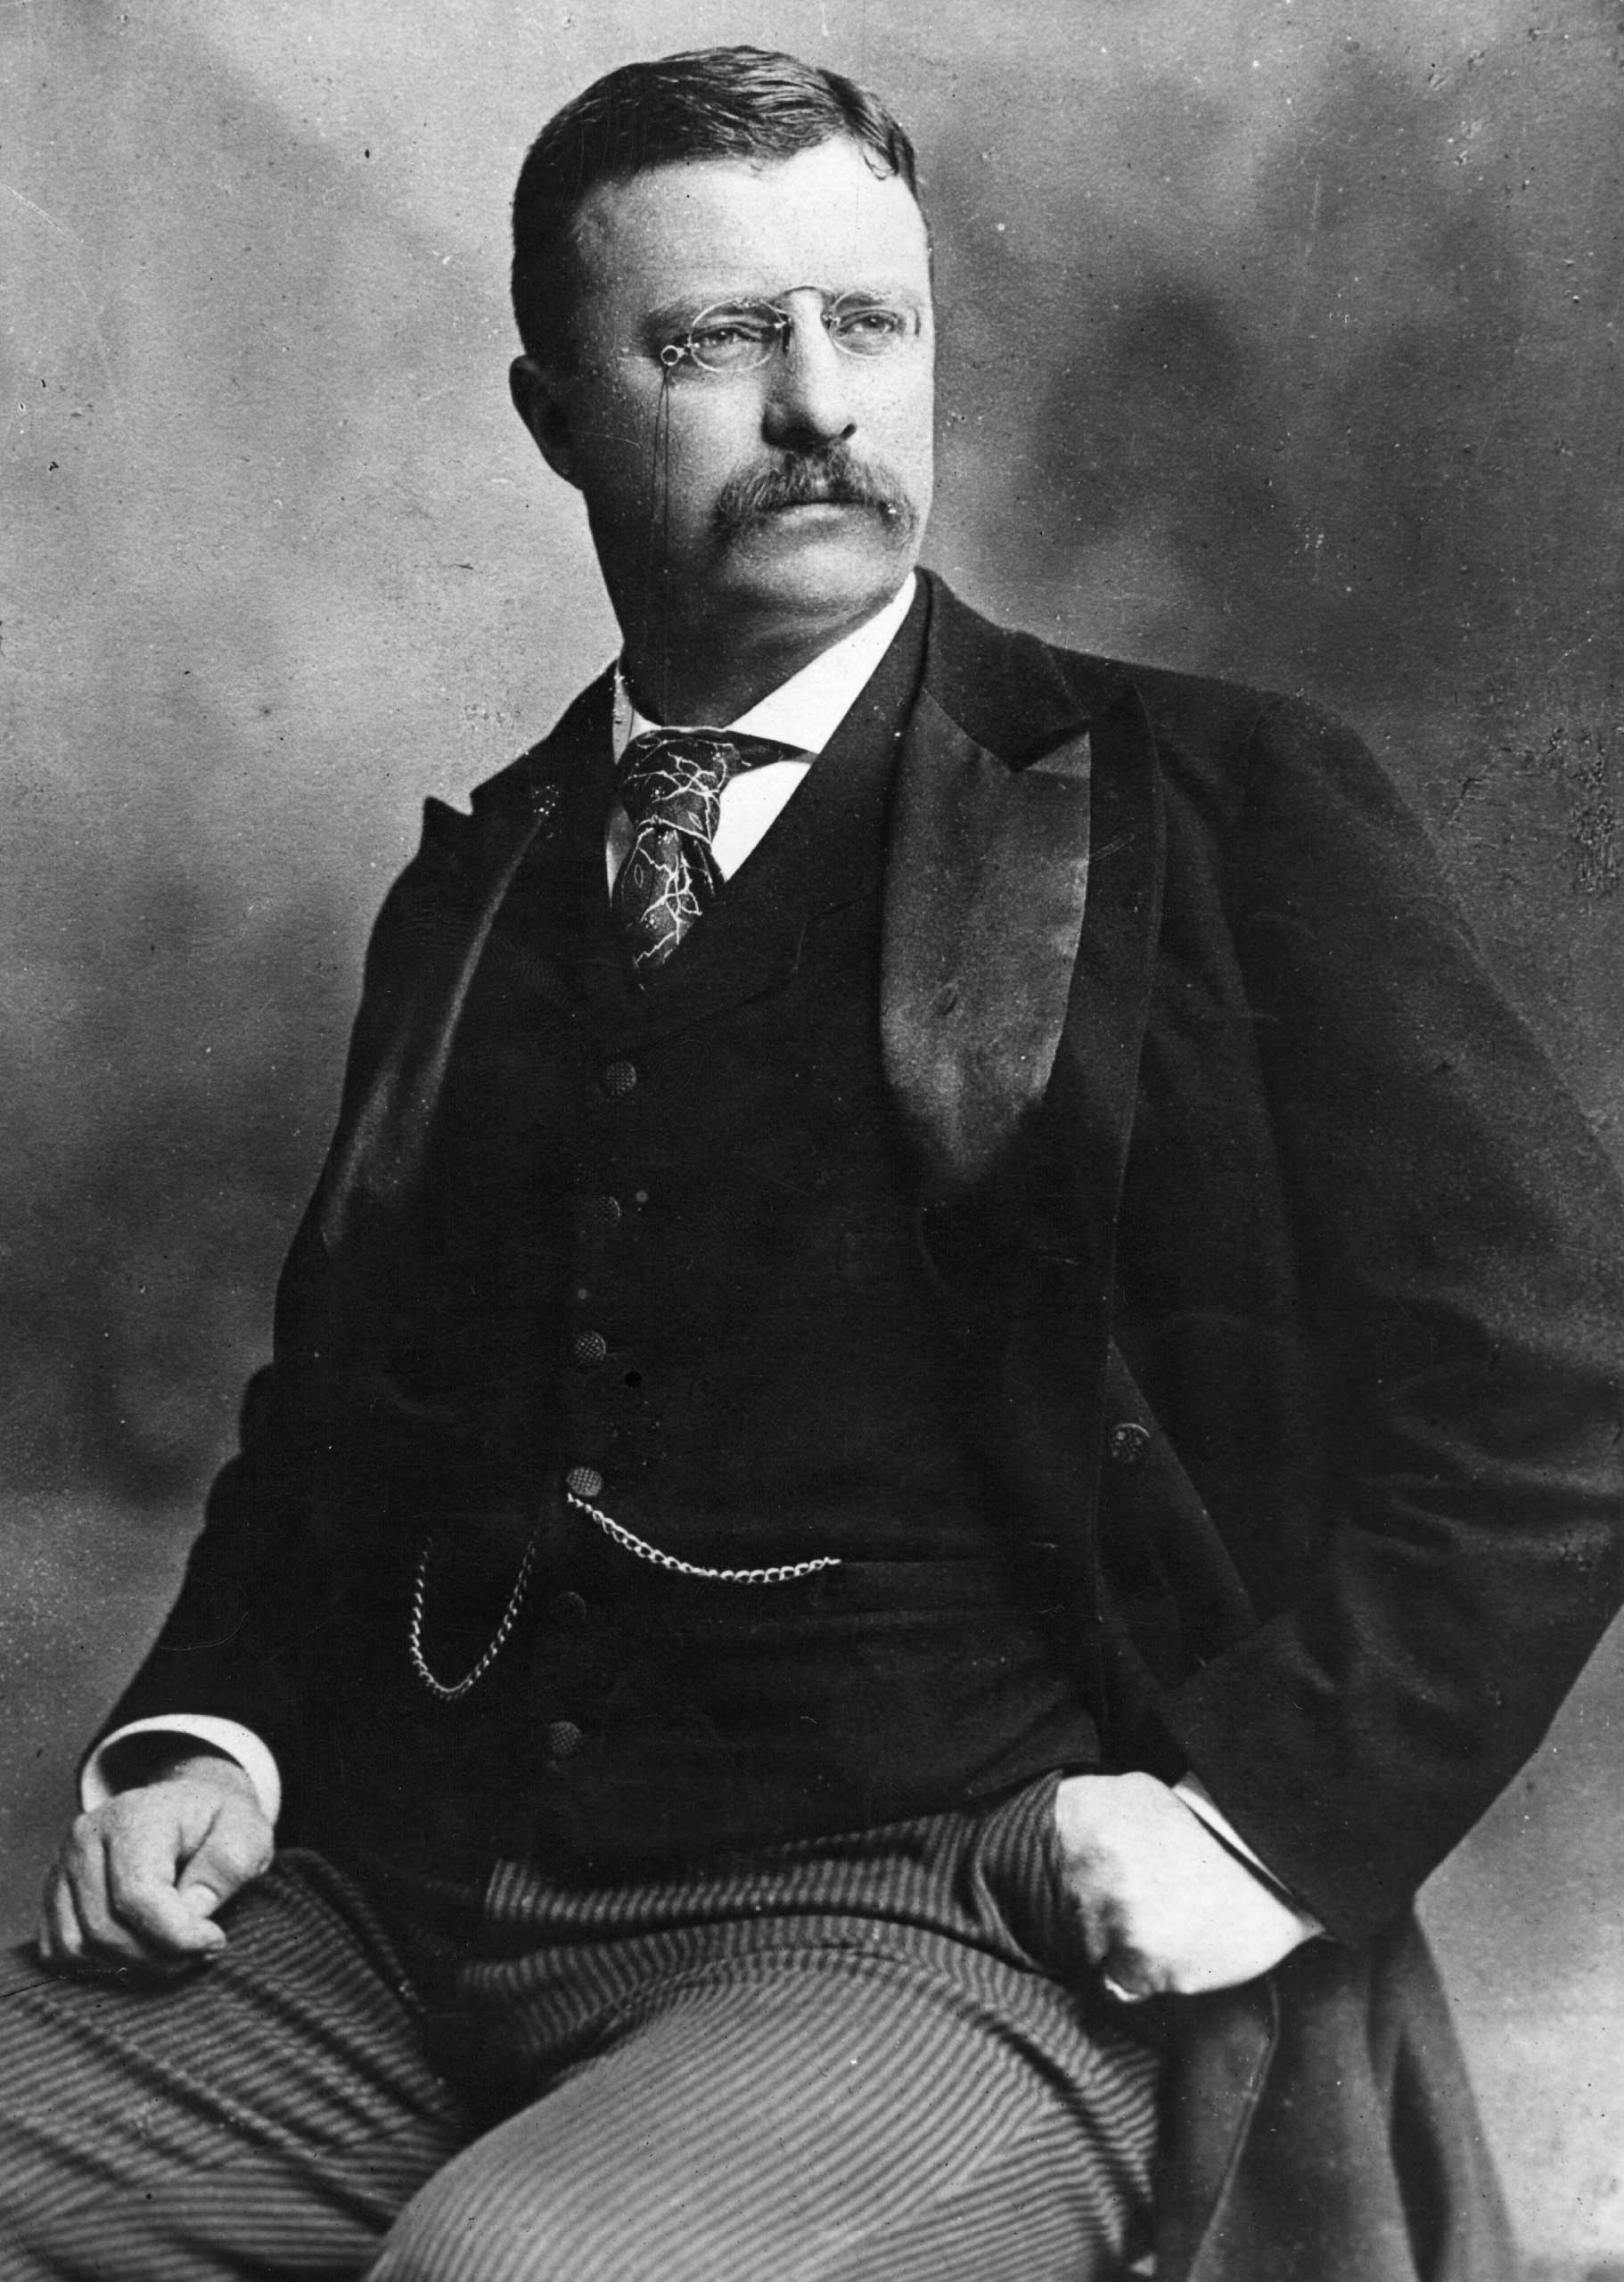 """<b>Theodore Roosevelt, 1906</b>""""[F]or his successful mediation to end the Russo-Japanese war and for his interest in arbitration, having provided the Hague arbitration court with its very first case"""""""